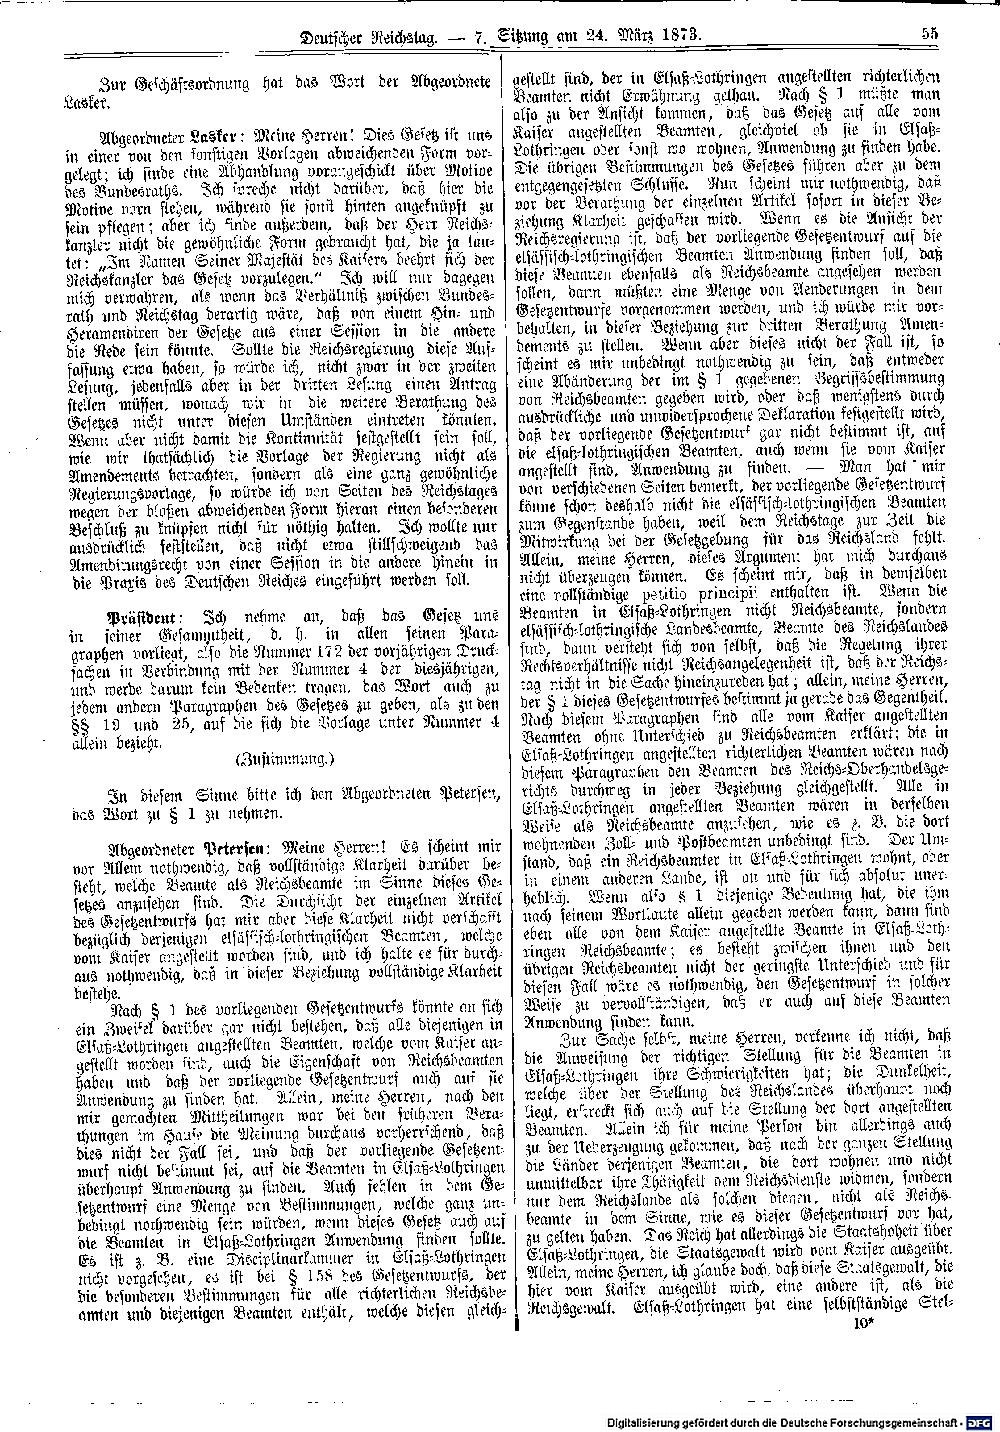 Scan of page 55